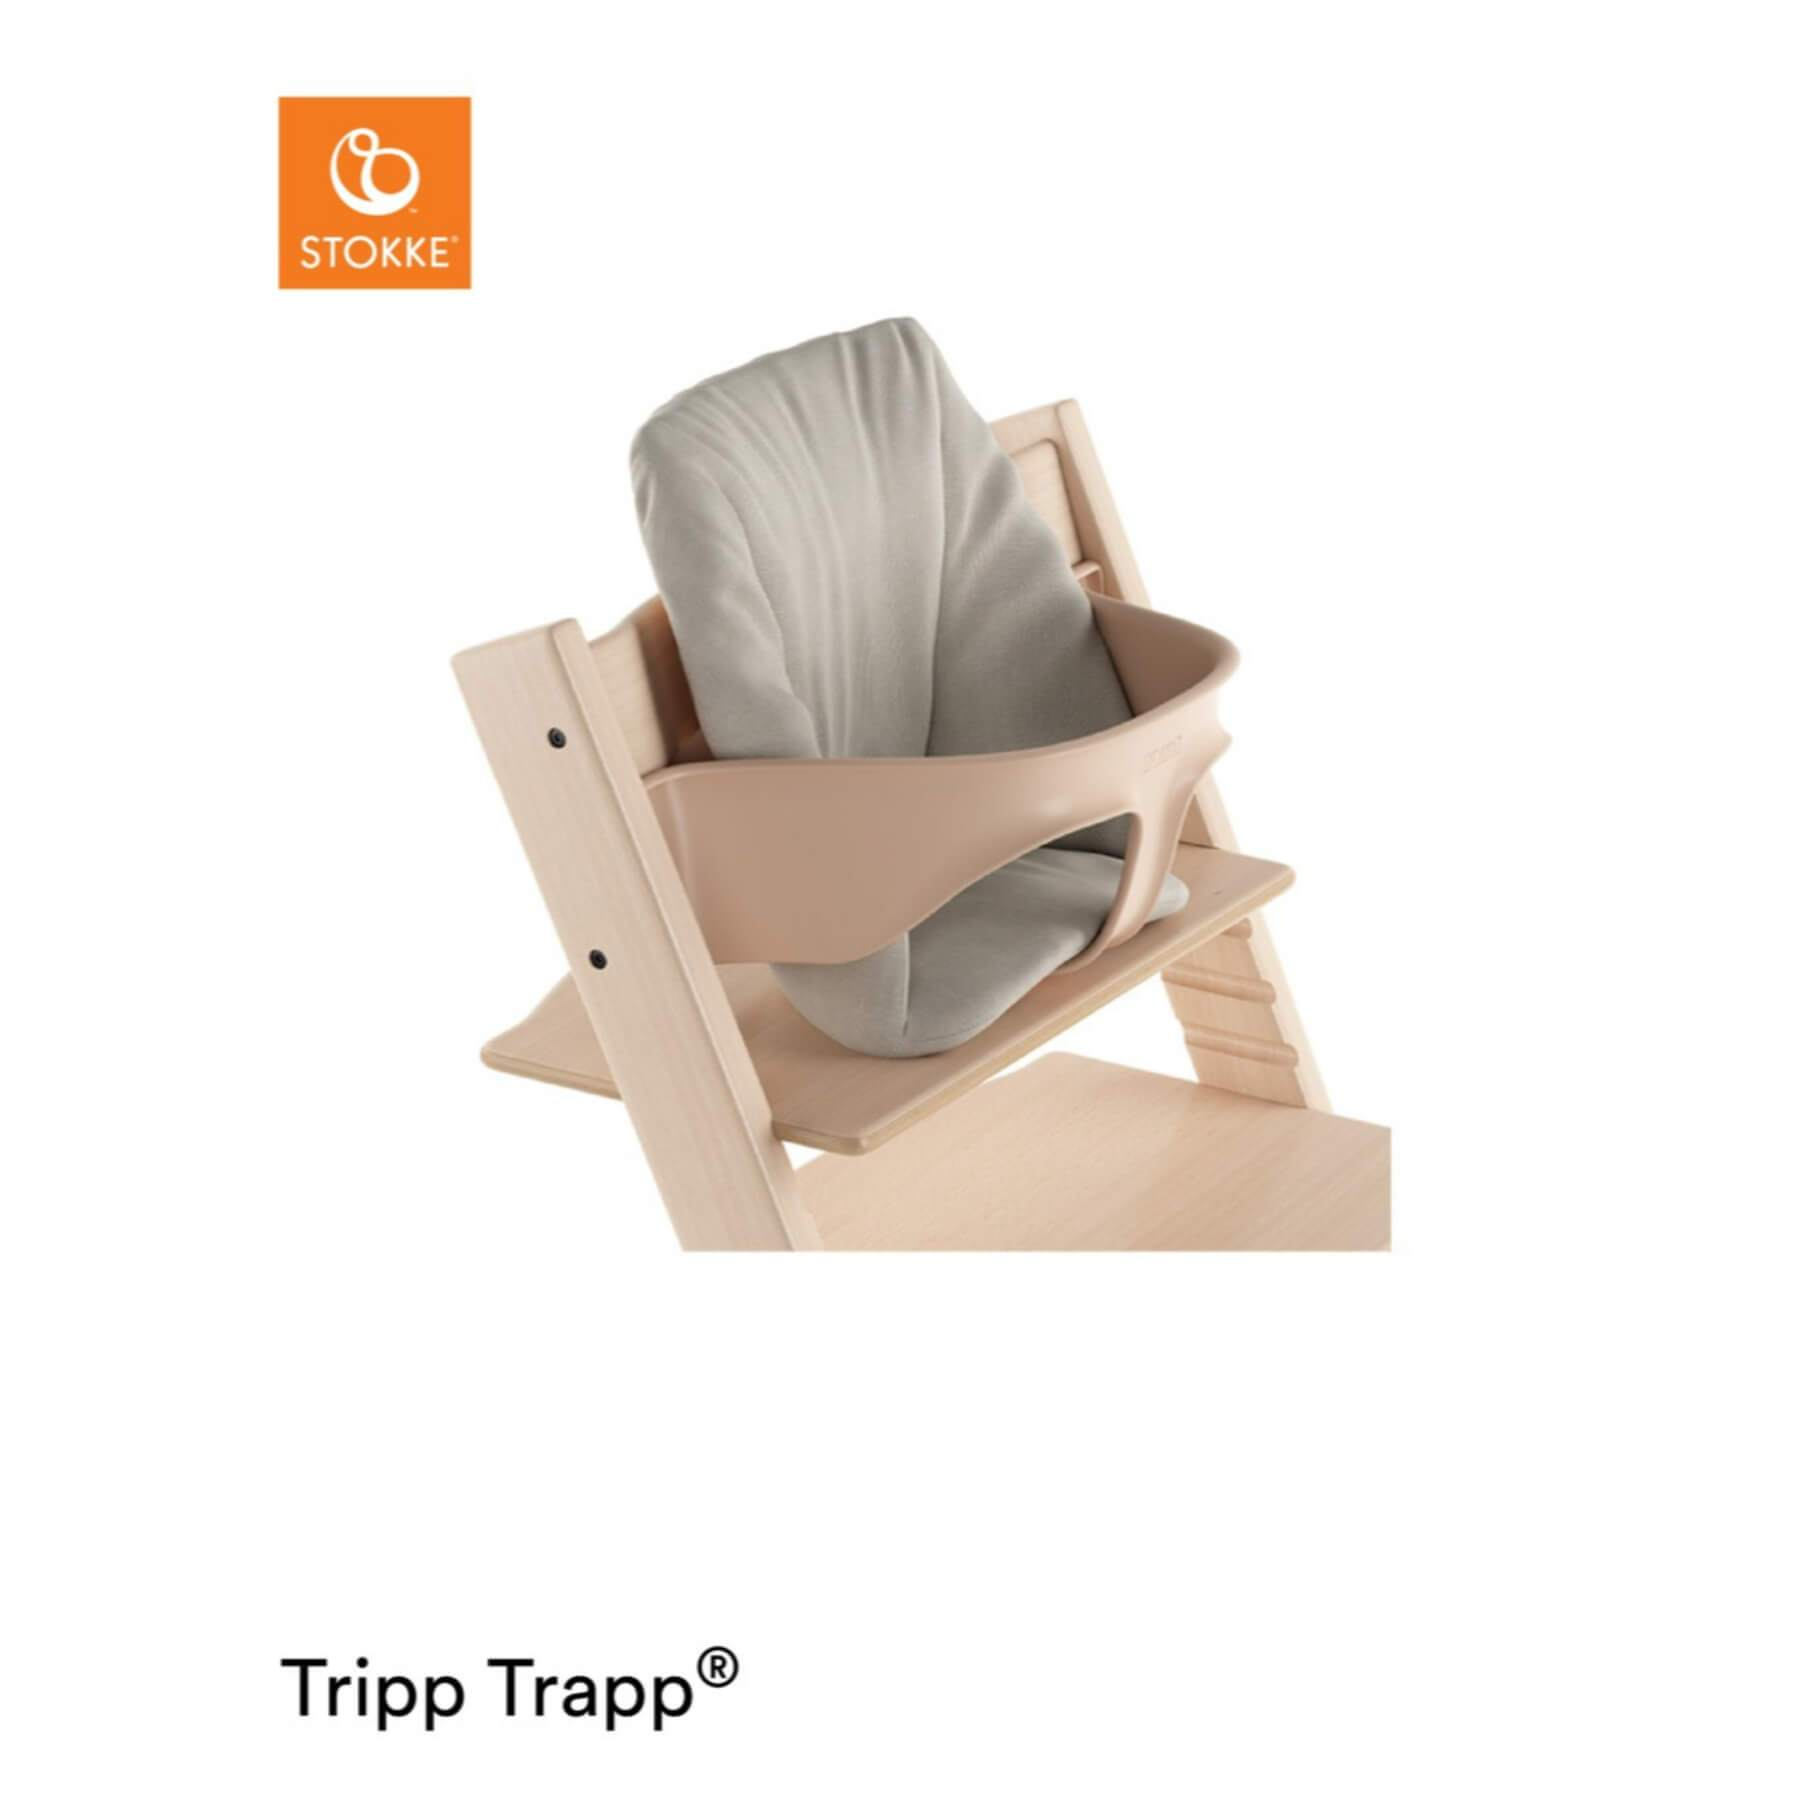 Stokke Tripp Trapp Organic Baby Cushion - Timeless Grey